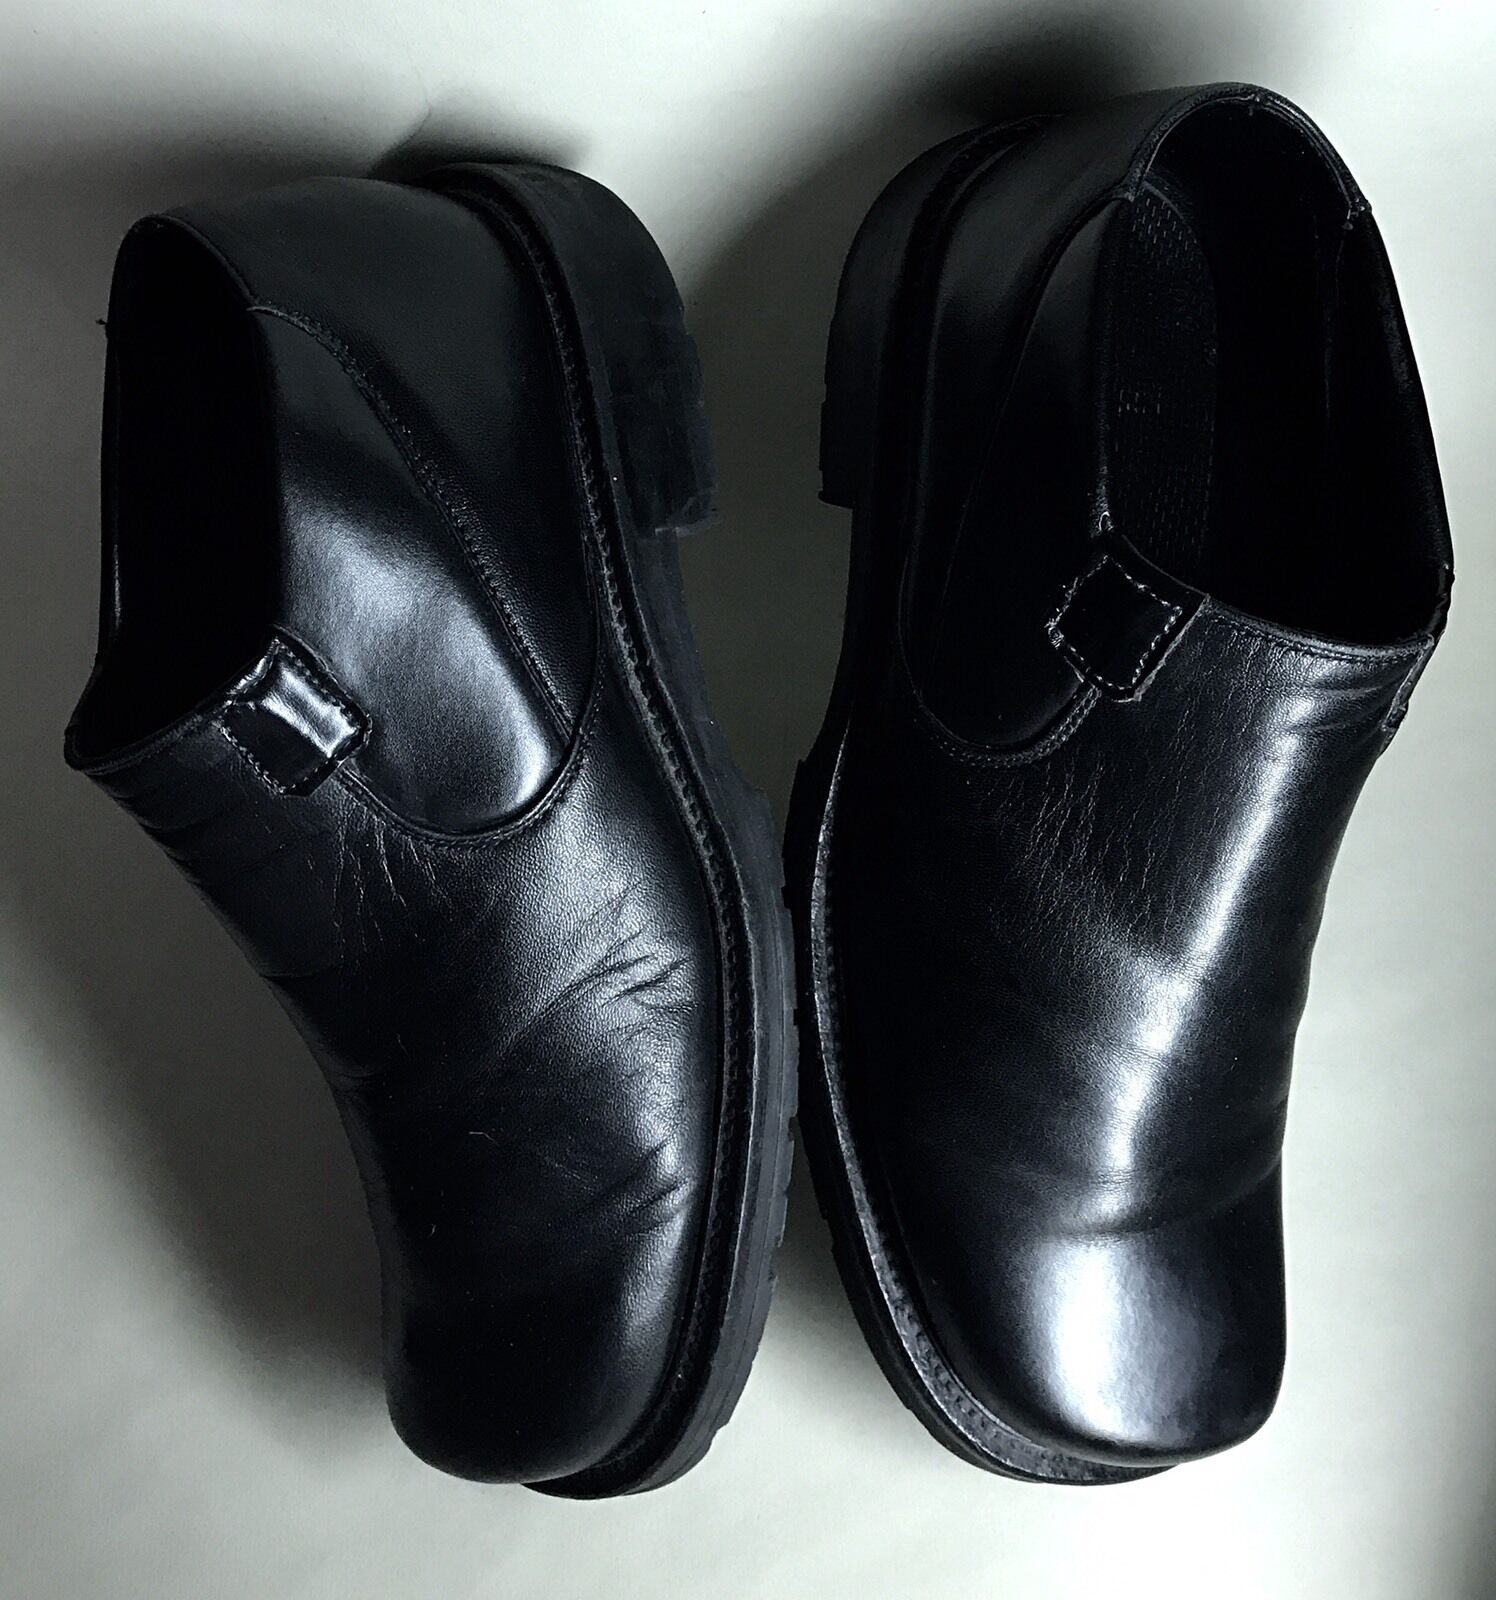 BACCO  BUCCI  DISCUS  LOAFER SHOES Made In Italy